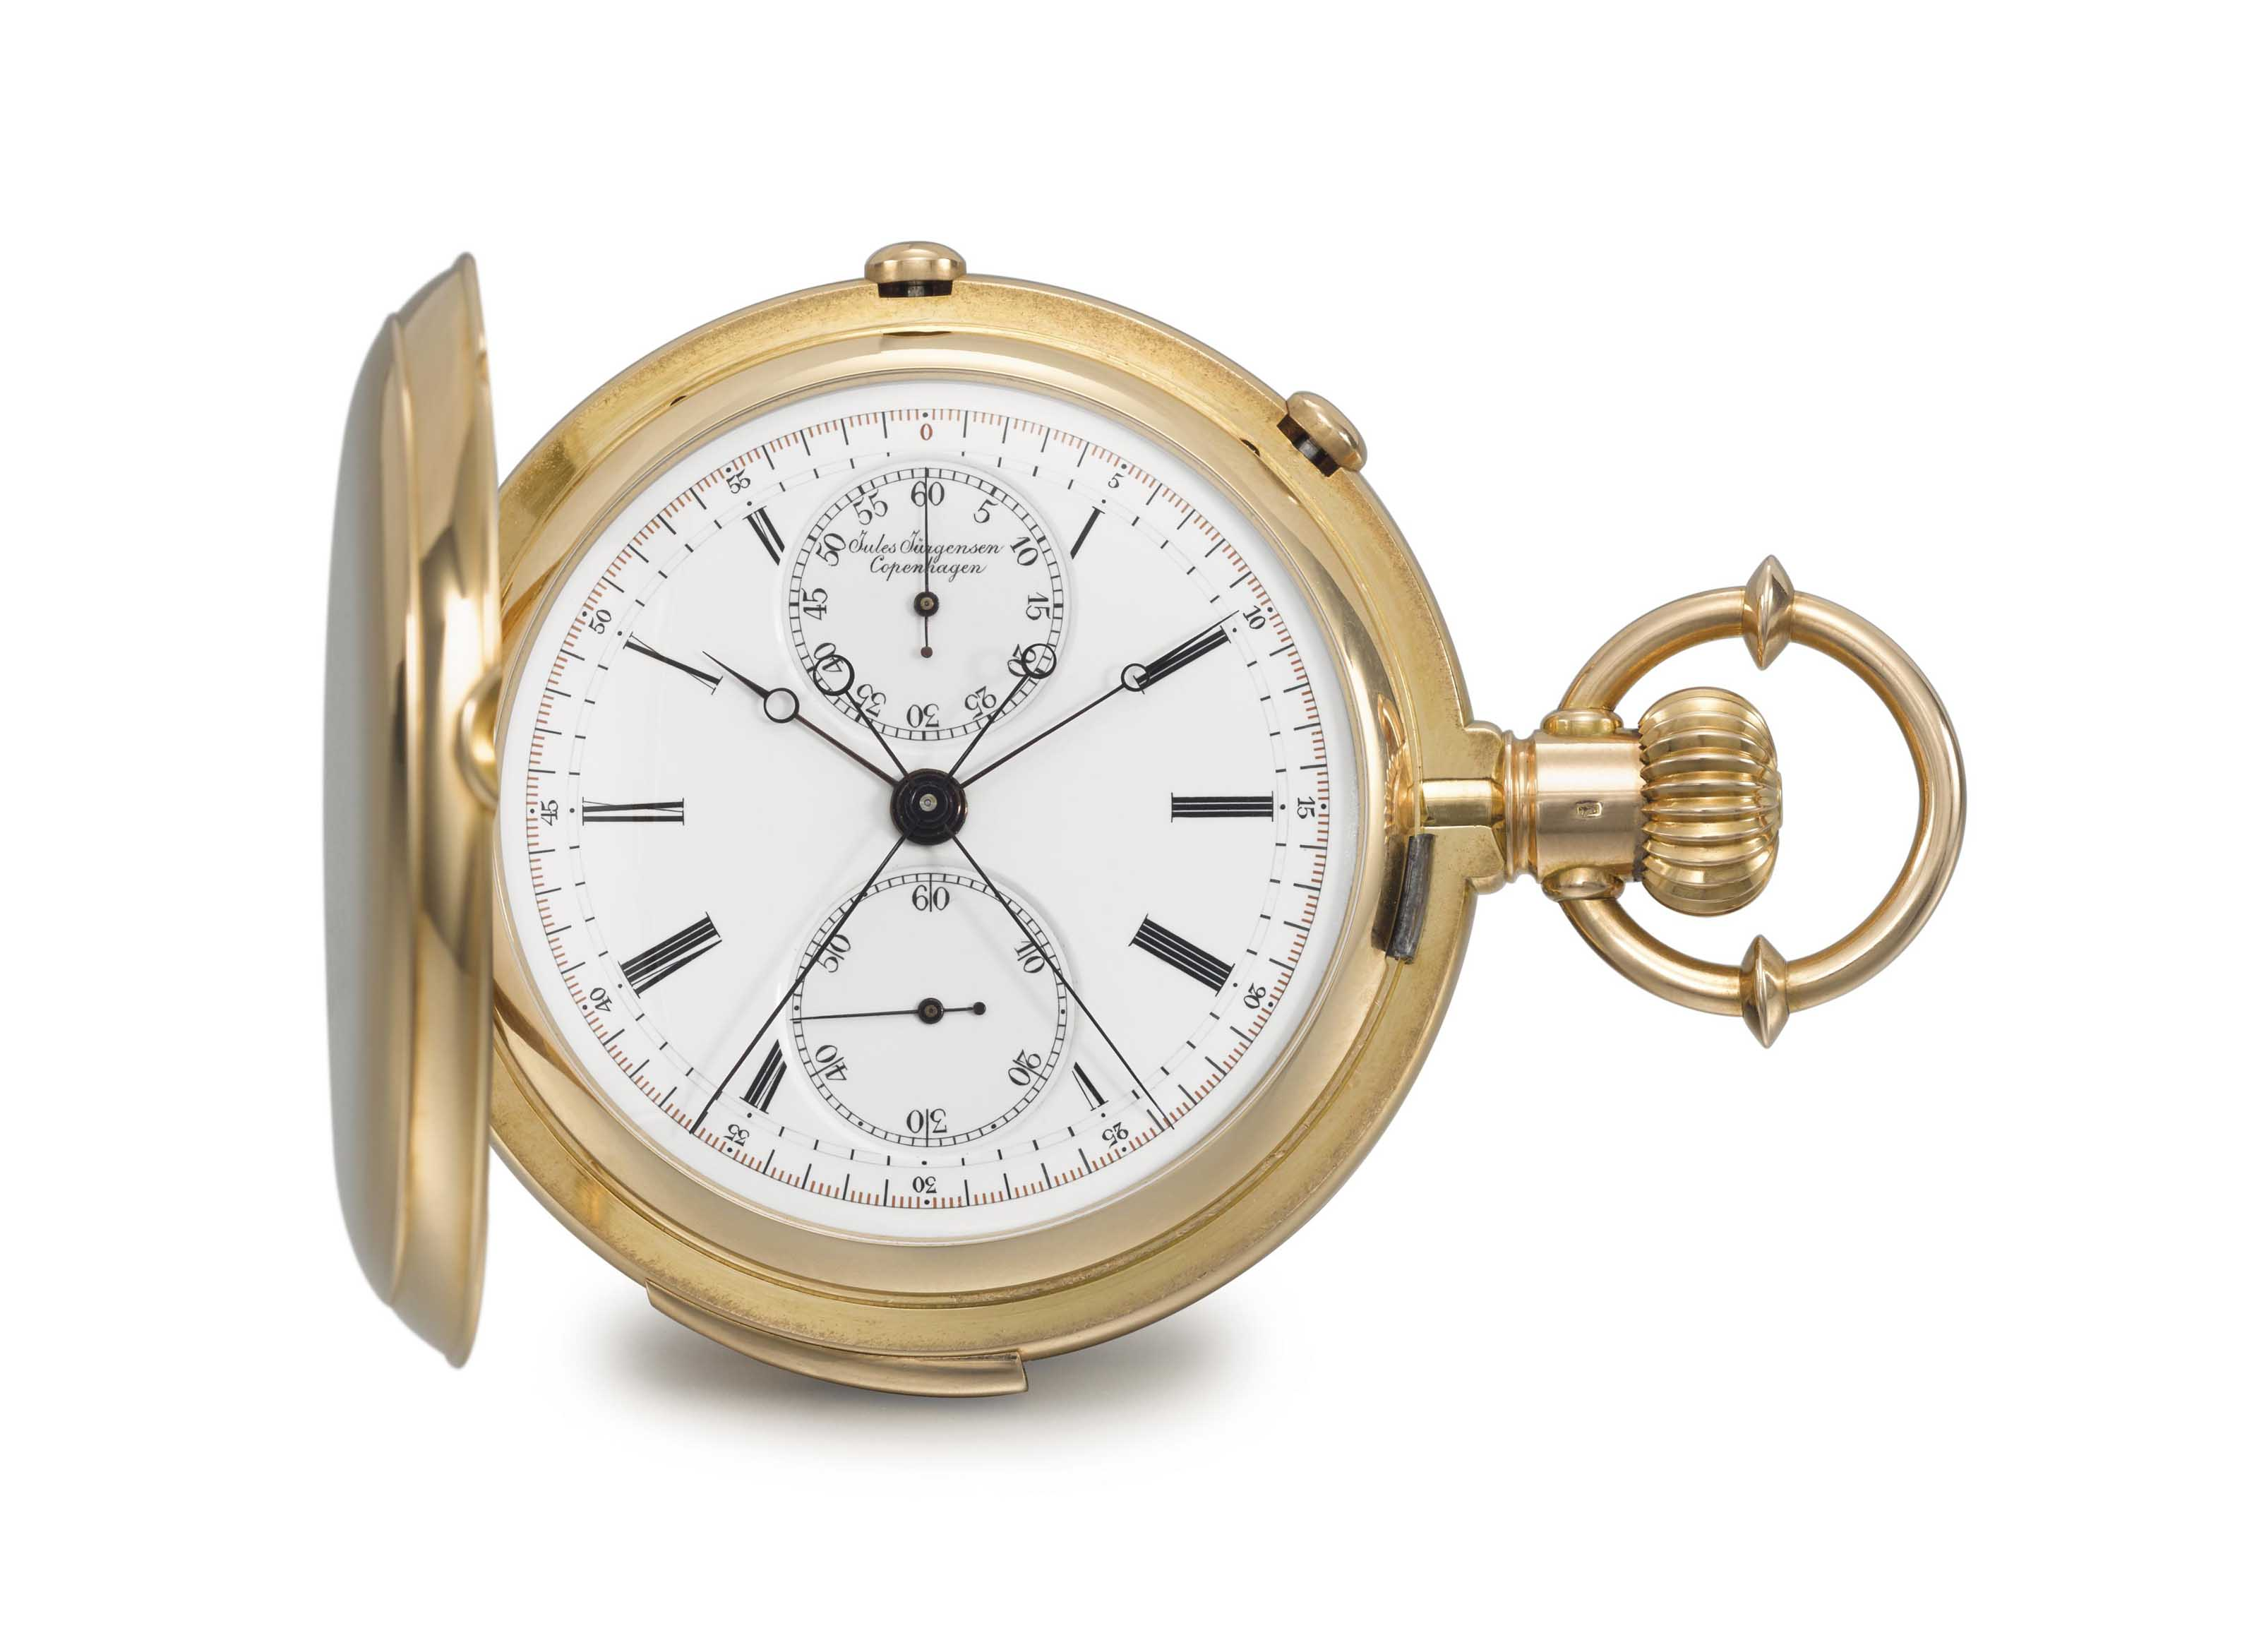 Jules Jürgensen. A very fine and rare 18K gold hunter case minute repeating split seconds chronograph keyless lever watch with Jurgensen's patented bow hand-setting mechanism.